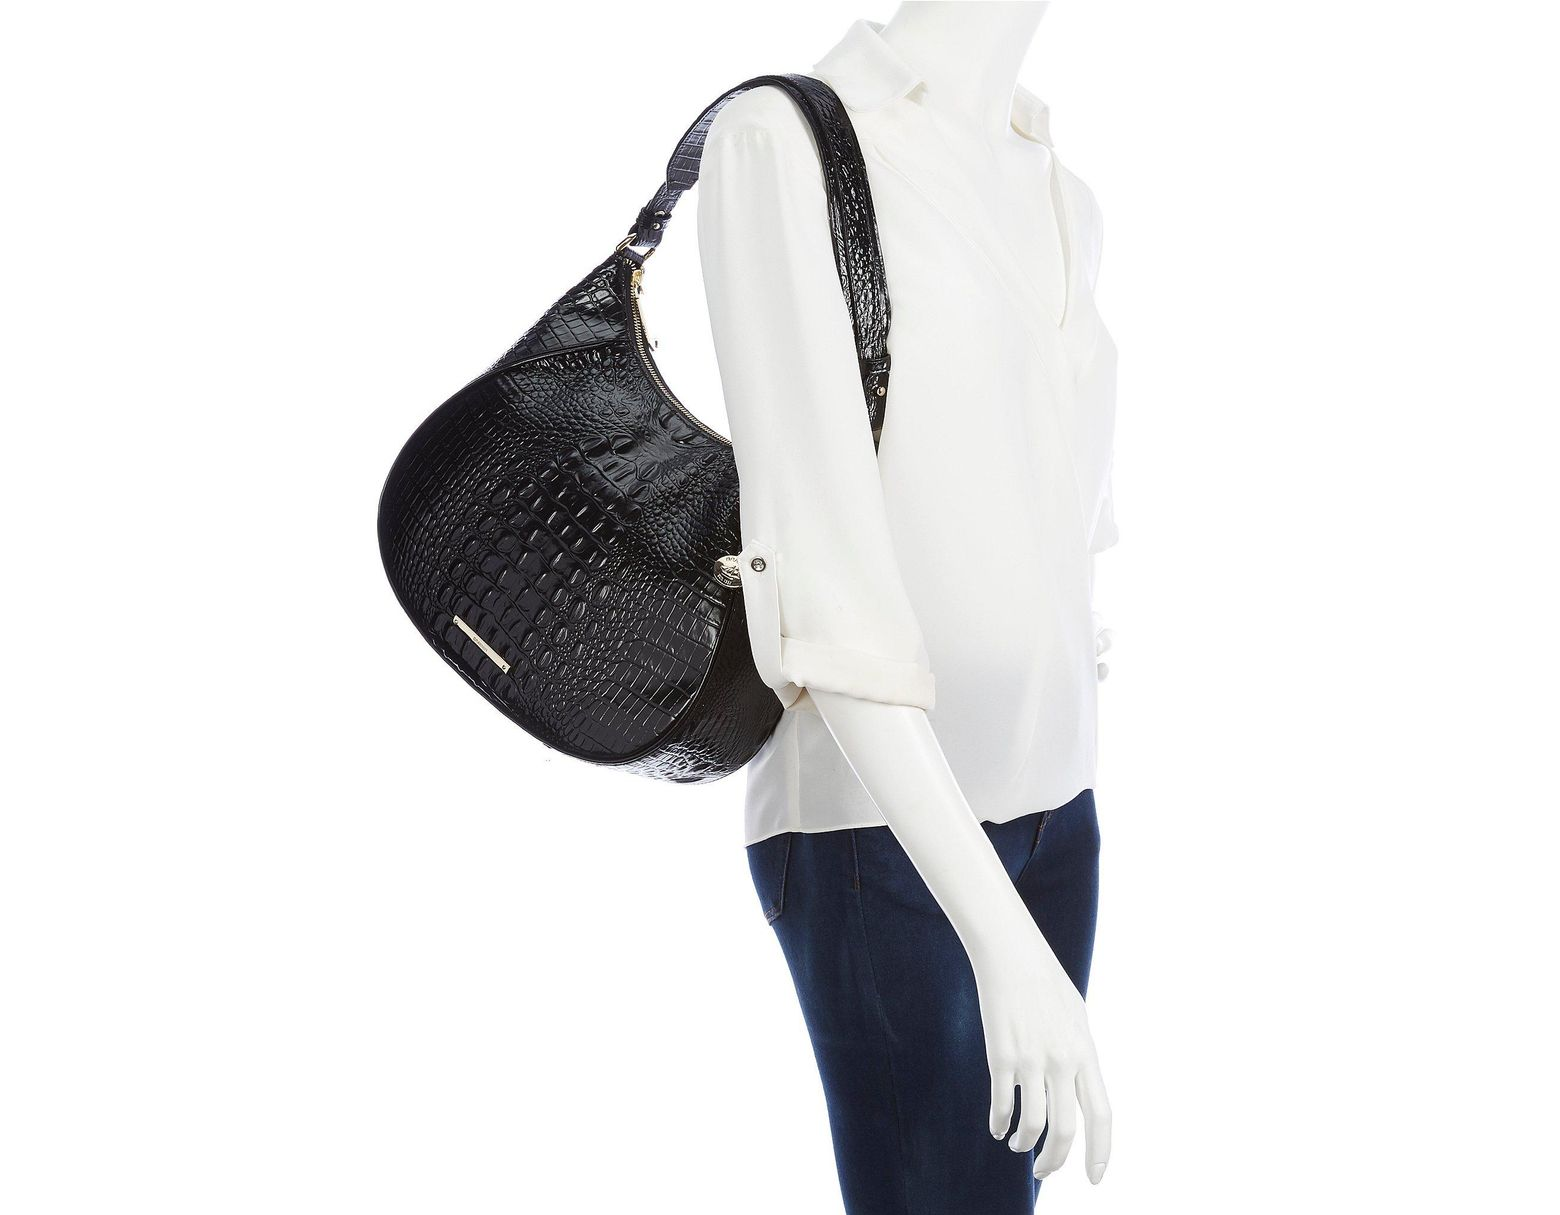 cac0235d3ca6 Brahmin Melbourne Collection Amira Crocodile-embossed Hobo Bag in Black -  Lyst